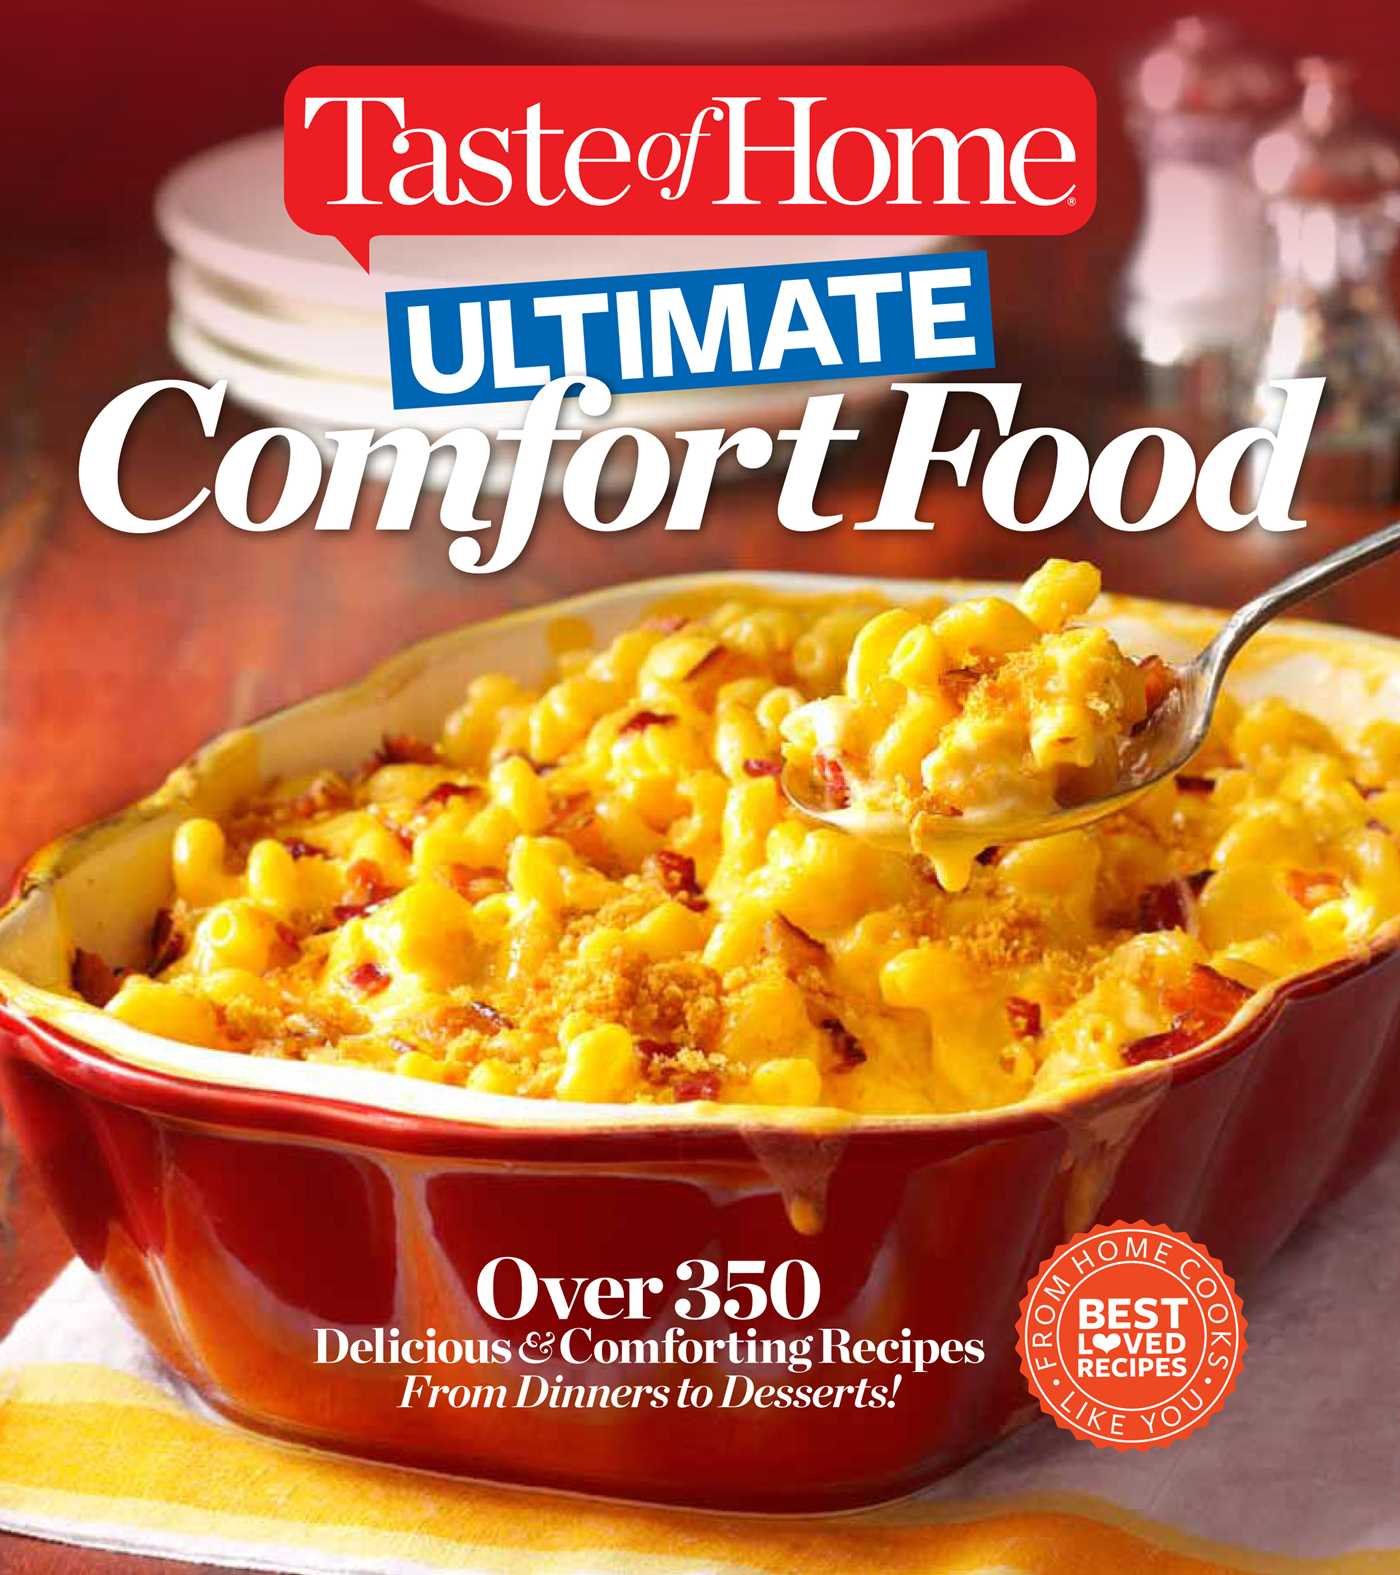 Taste-of-home-ultimate-comfort-food-9781617653223_hr